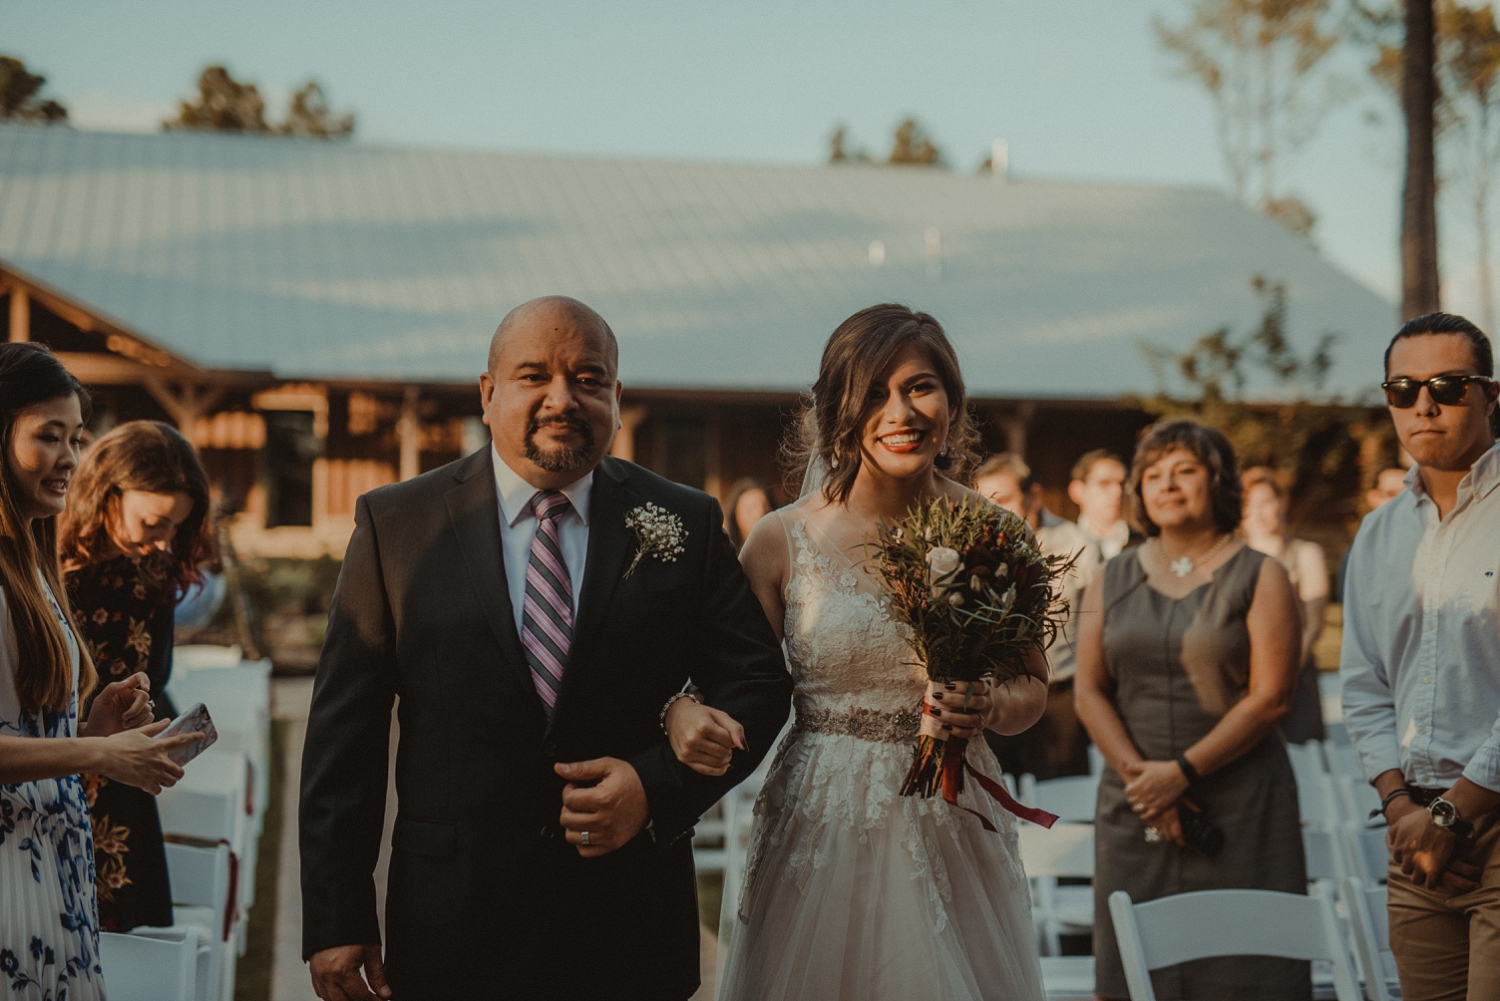 Bride walked down the aisle